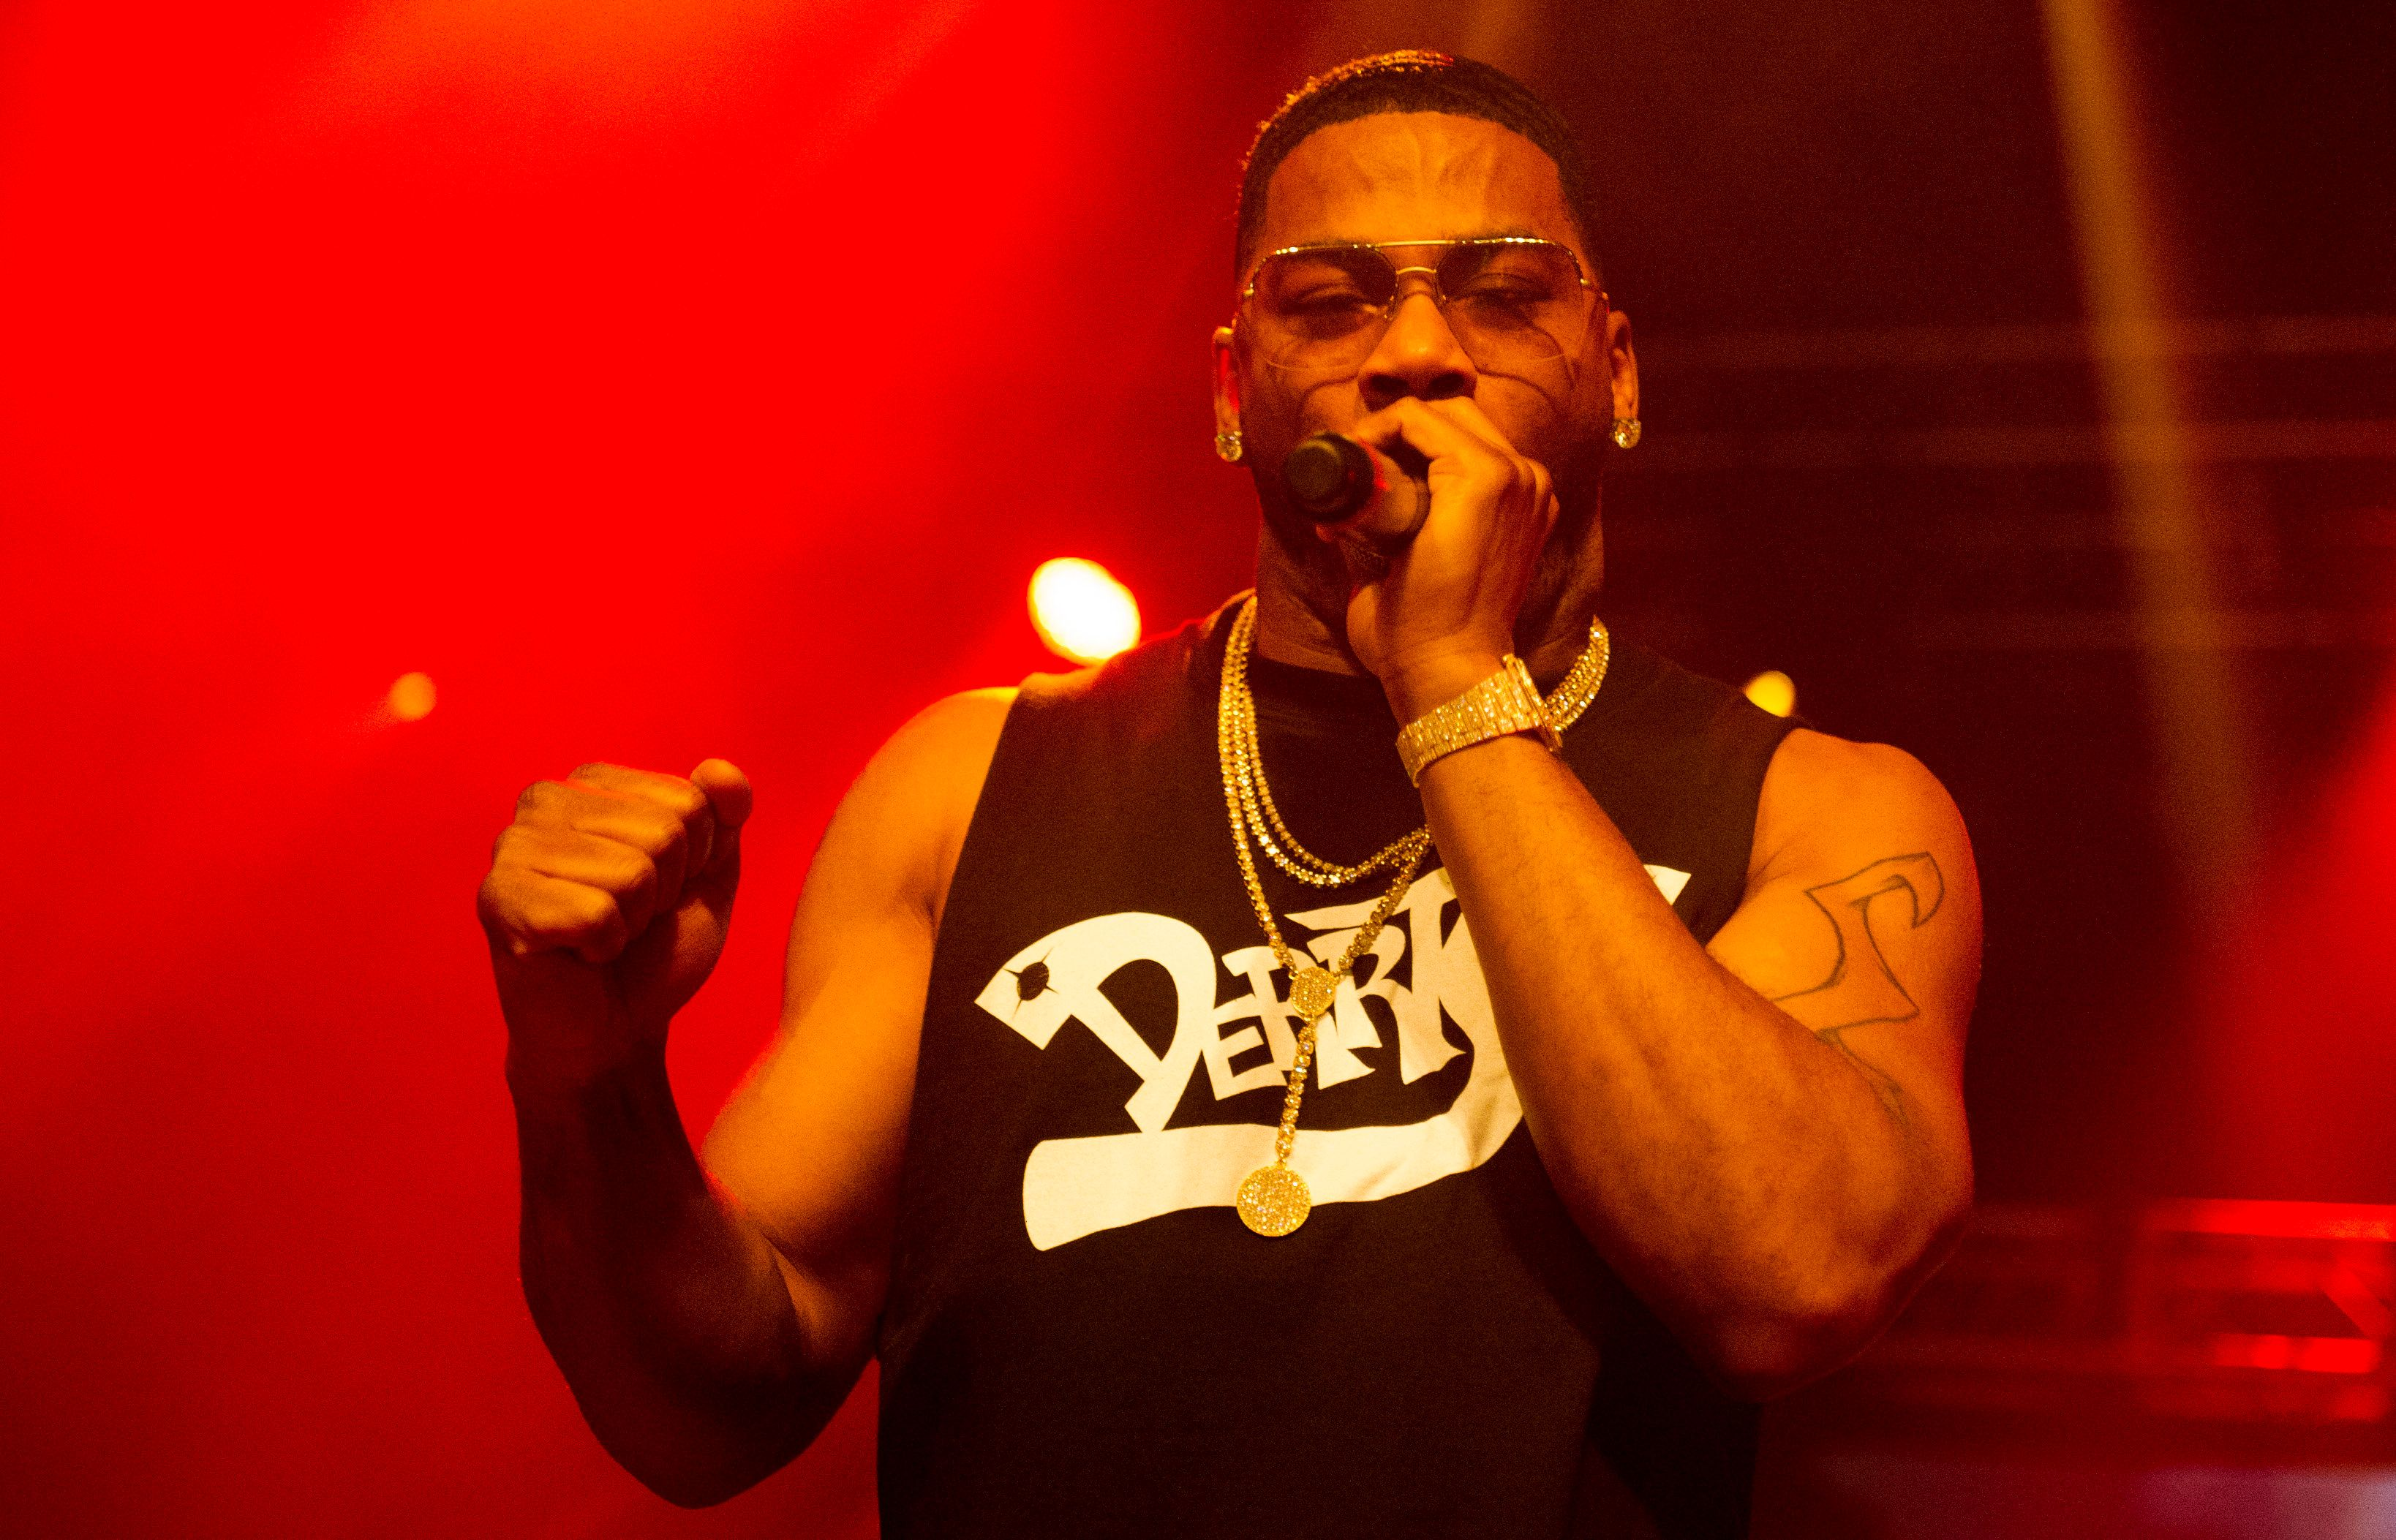 BIRMINGHAM, ENGLAND - NOVEMBER 15:  American rapper Nelly performs at O2 Academy Birmingham on November 15, 2017 in Birmingham, England.  (Photo by Katja Ogrin/Redferns)